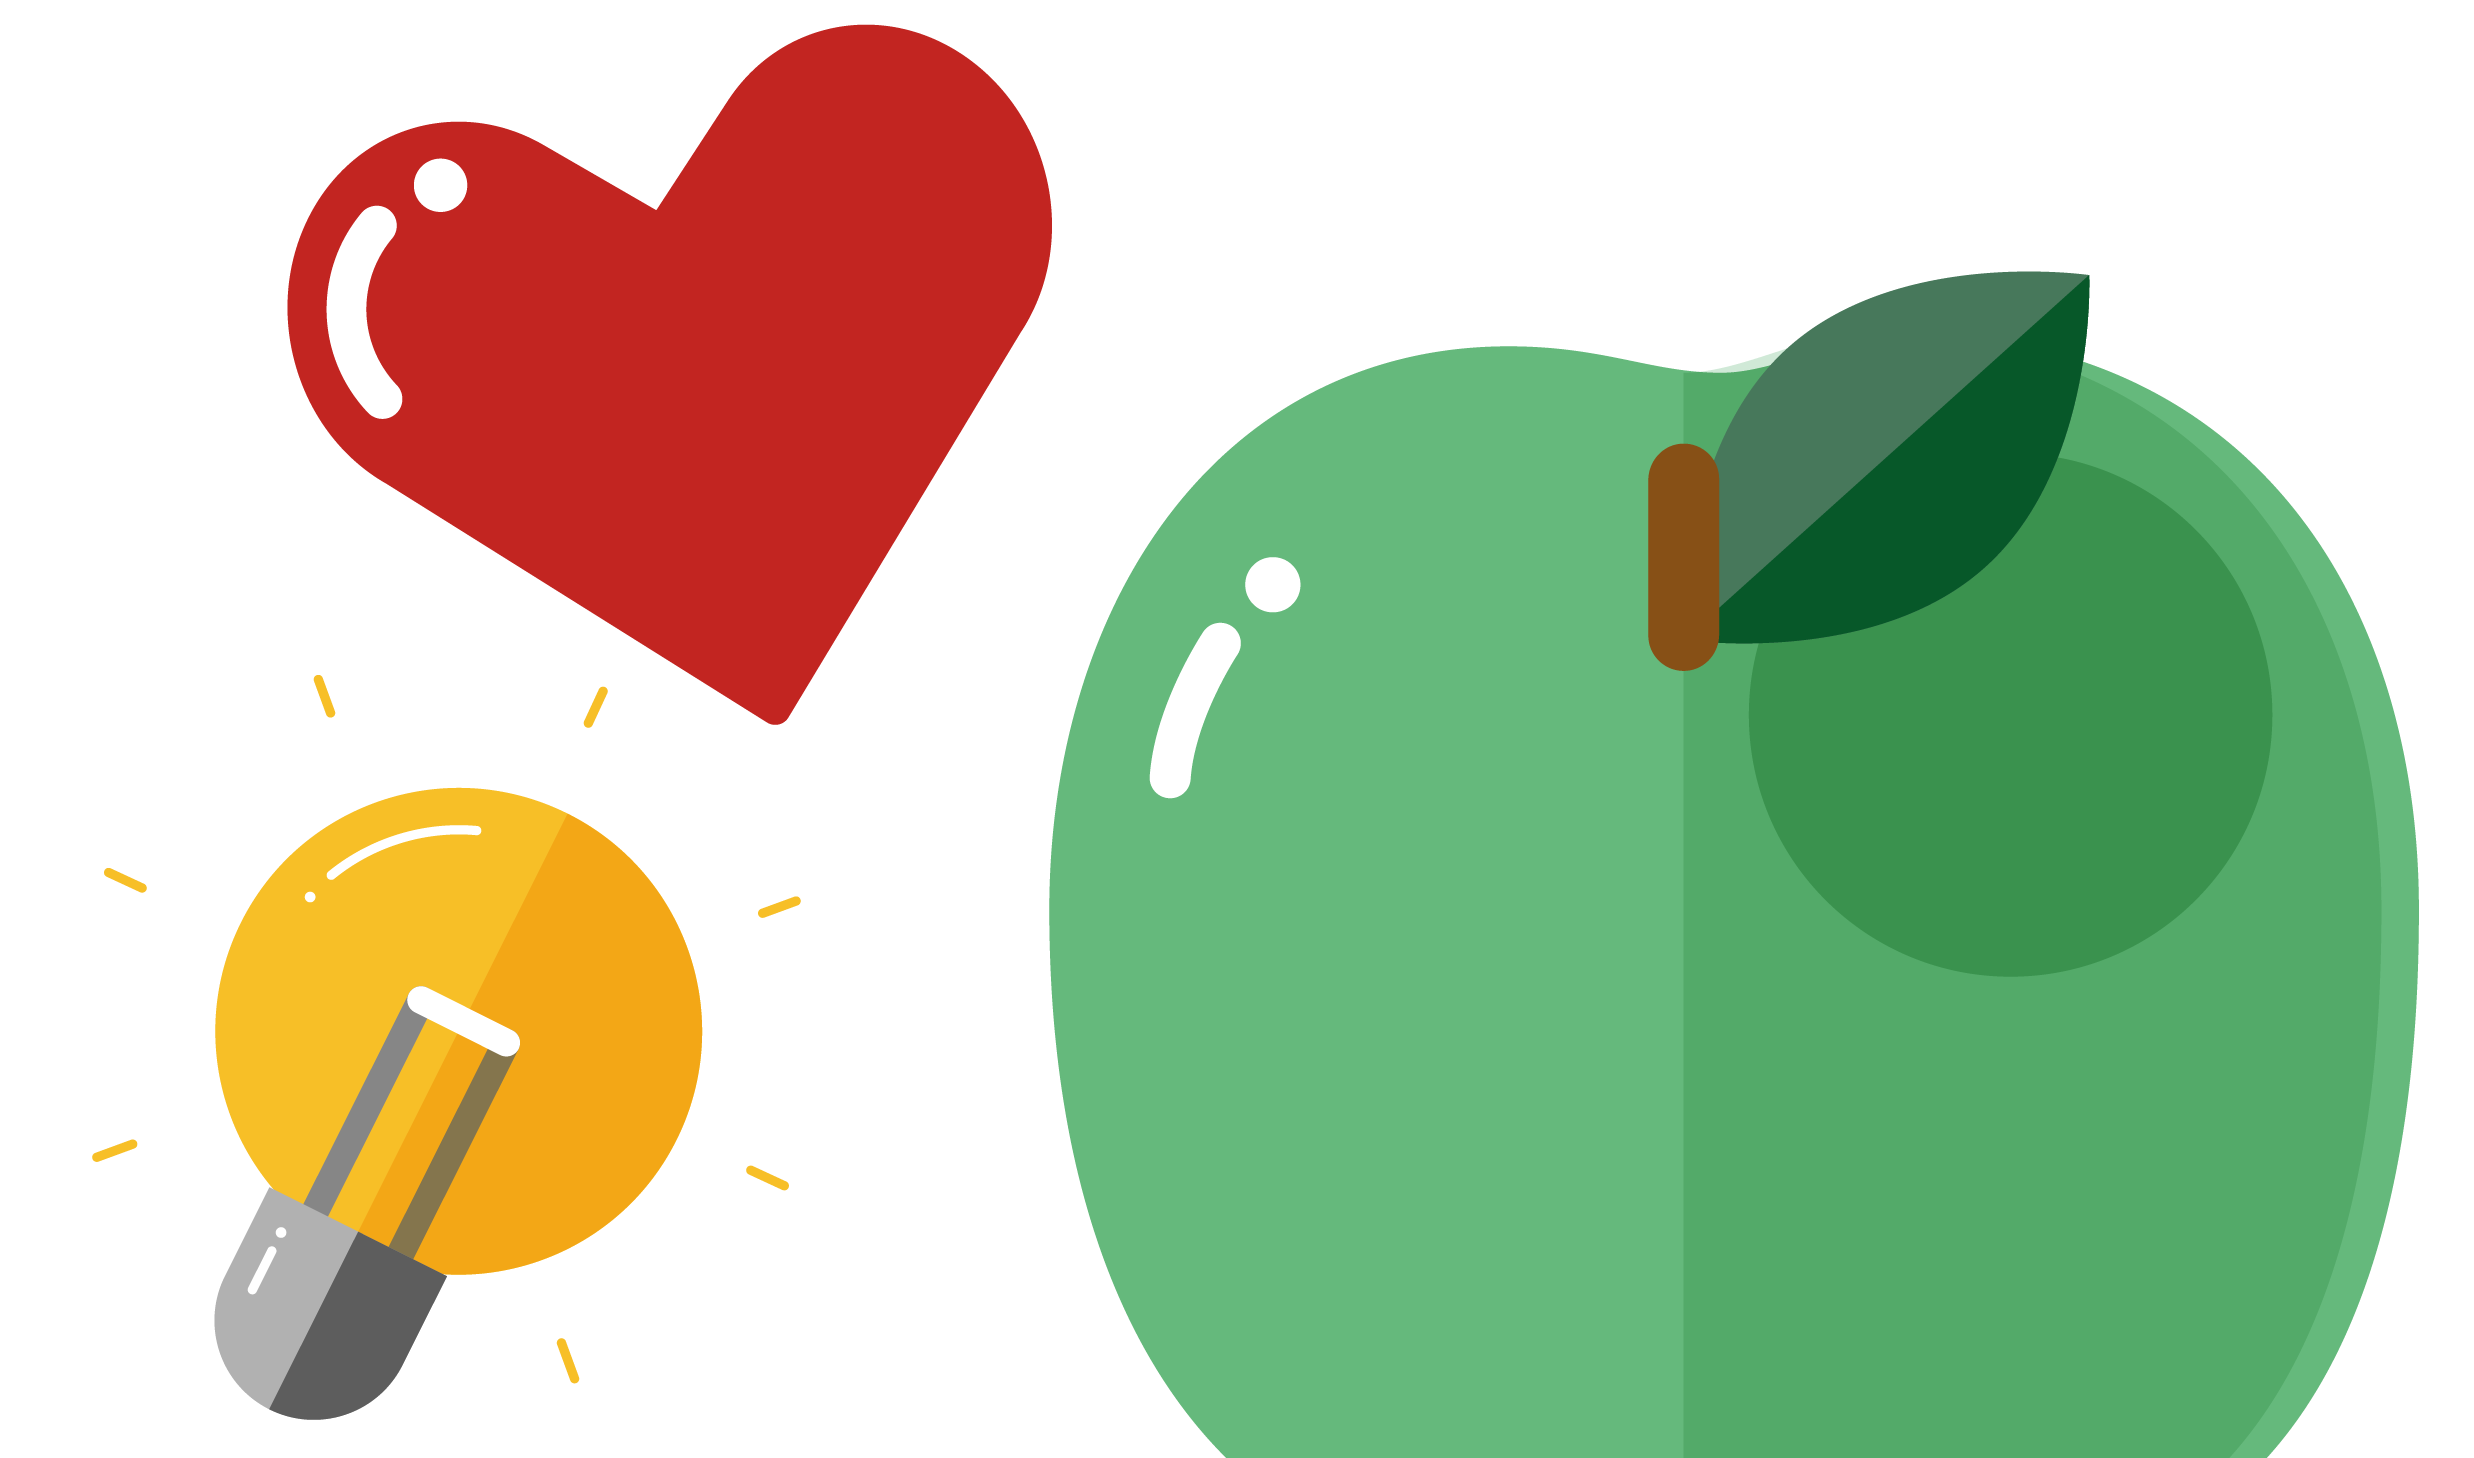 Illustration of green apple, red heart and light bulb